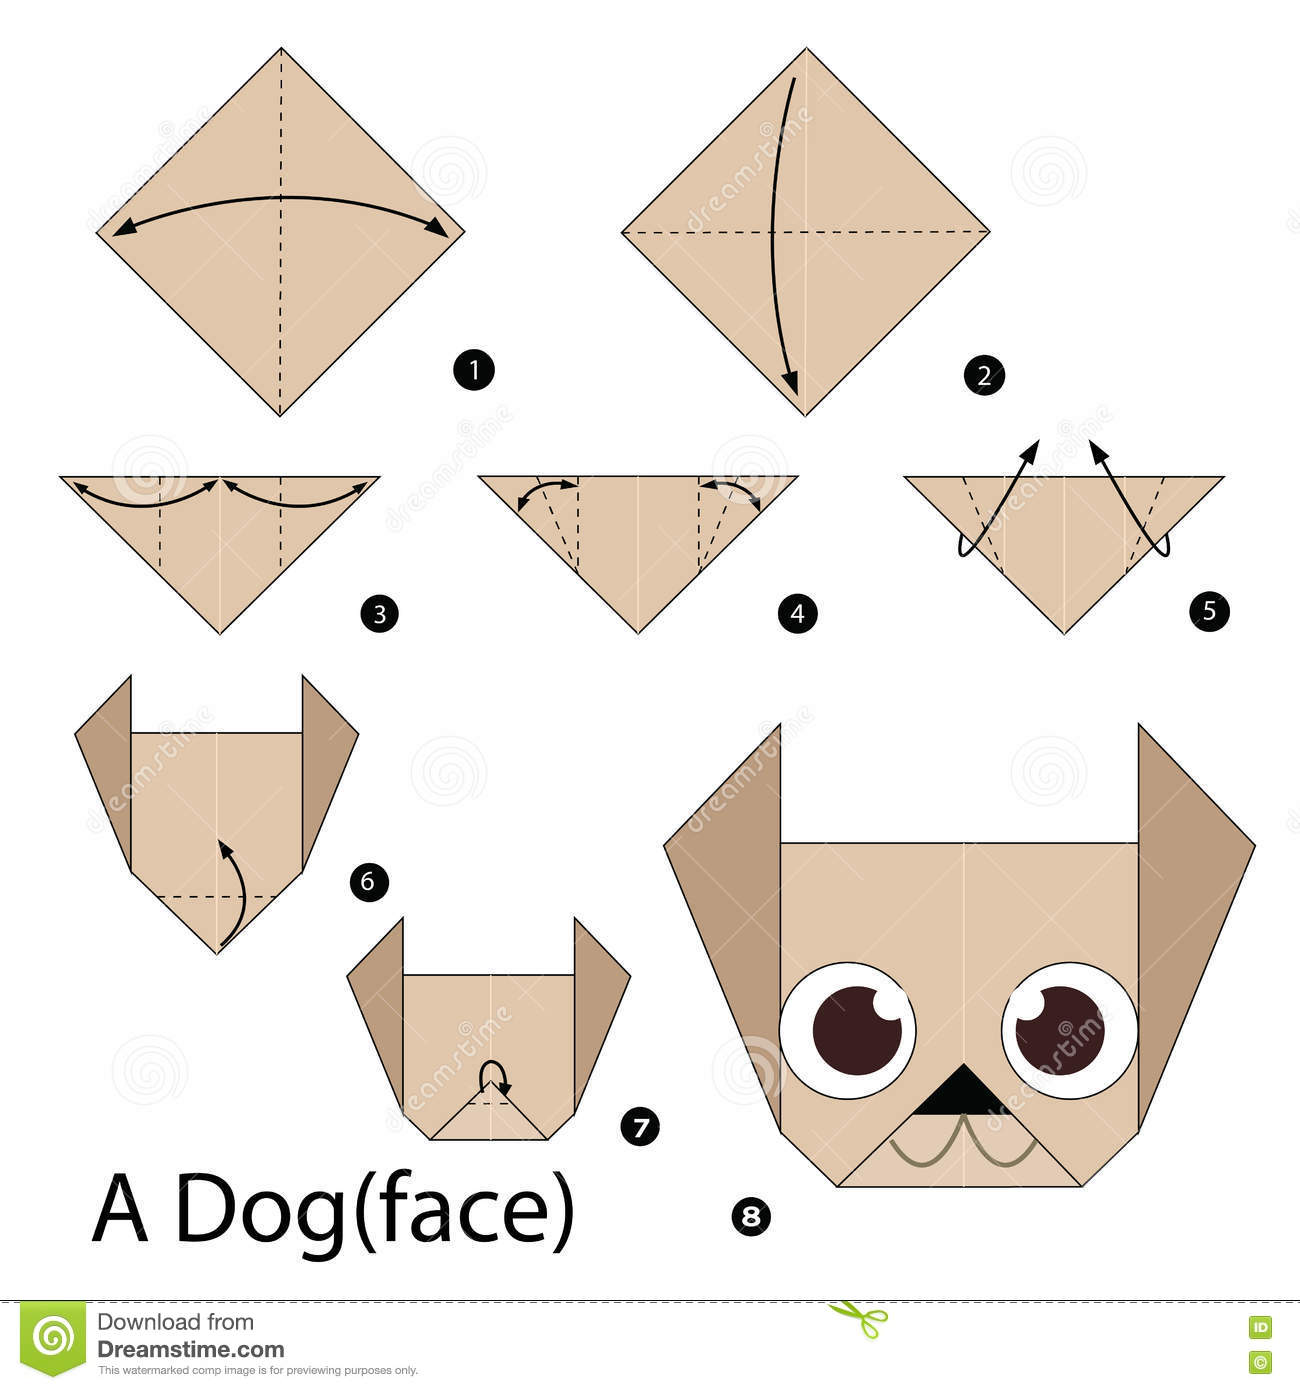 Origami dog face how to origami - Dog Illustration Instructions Origami